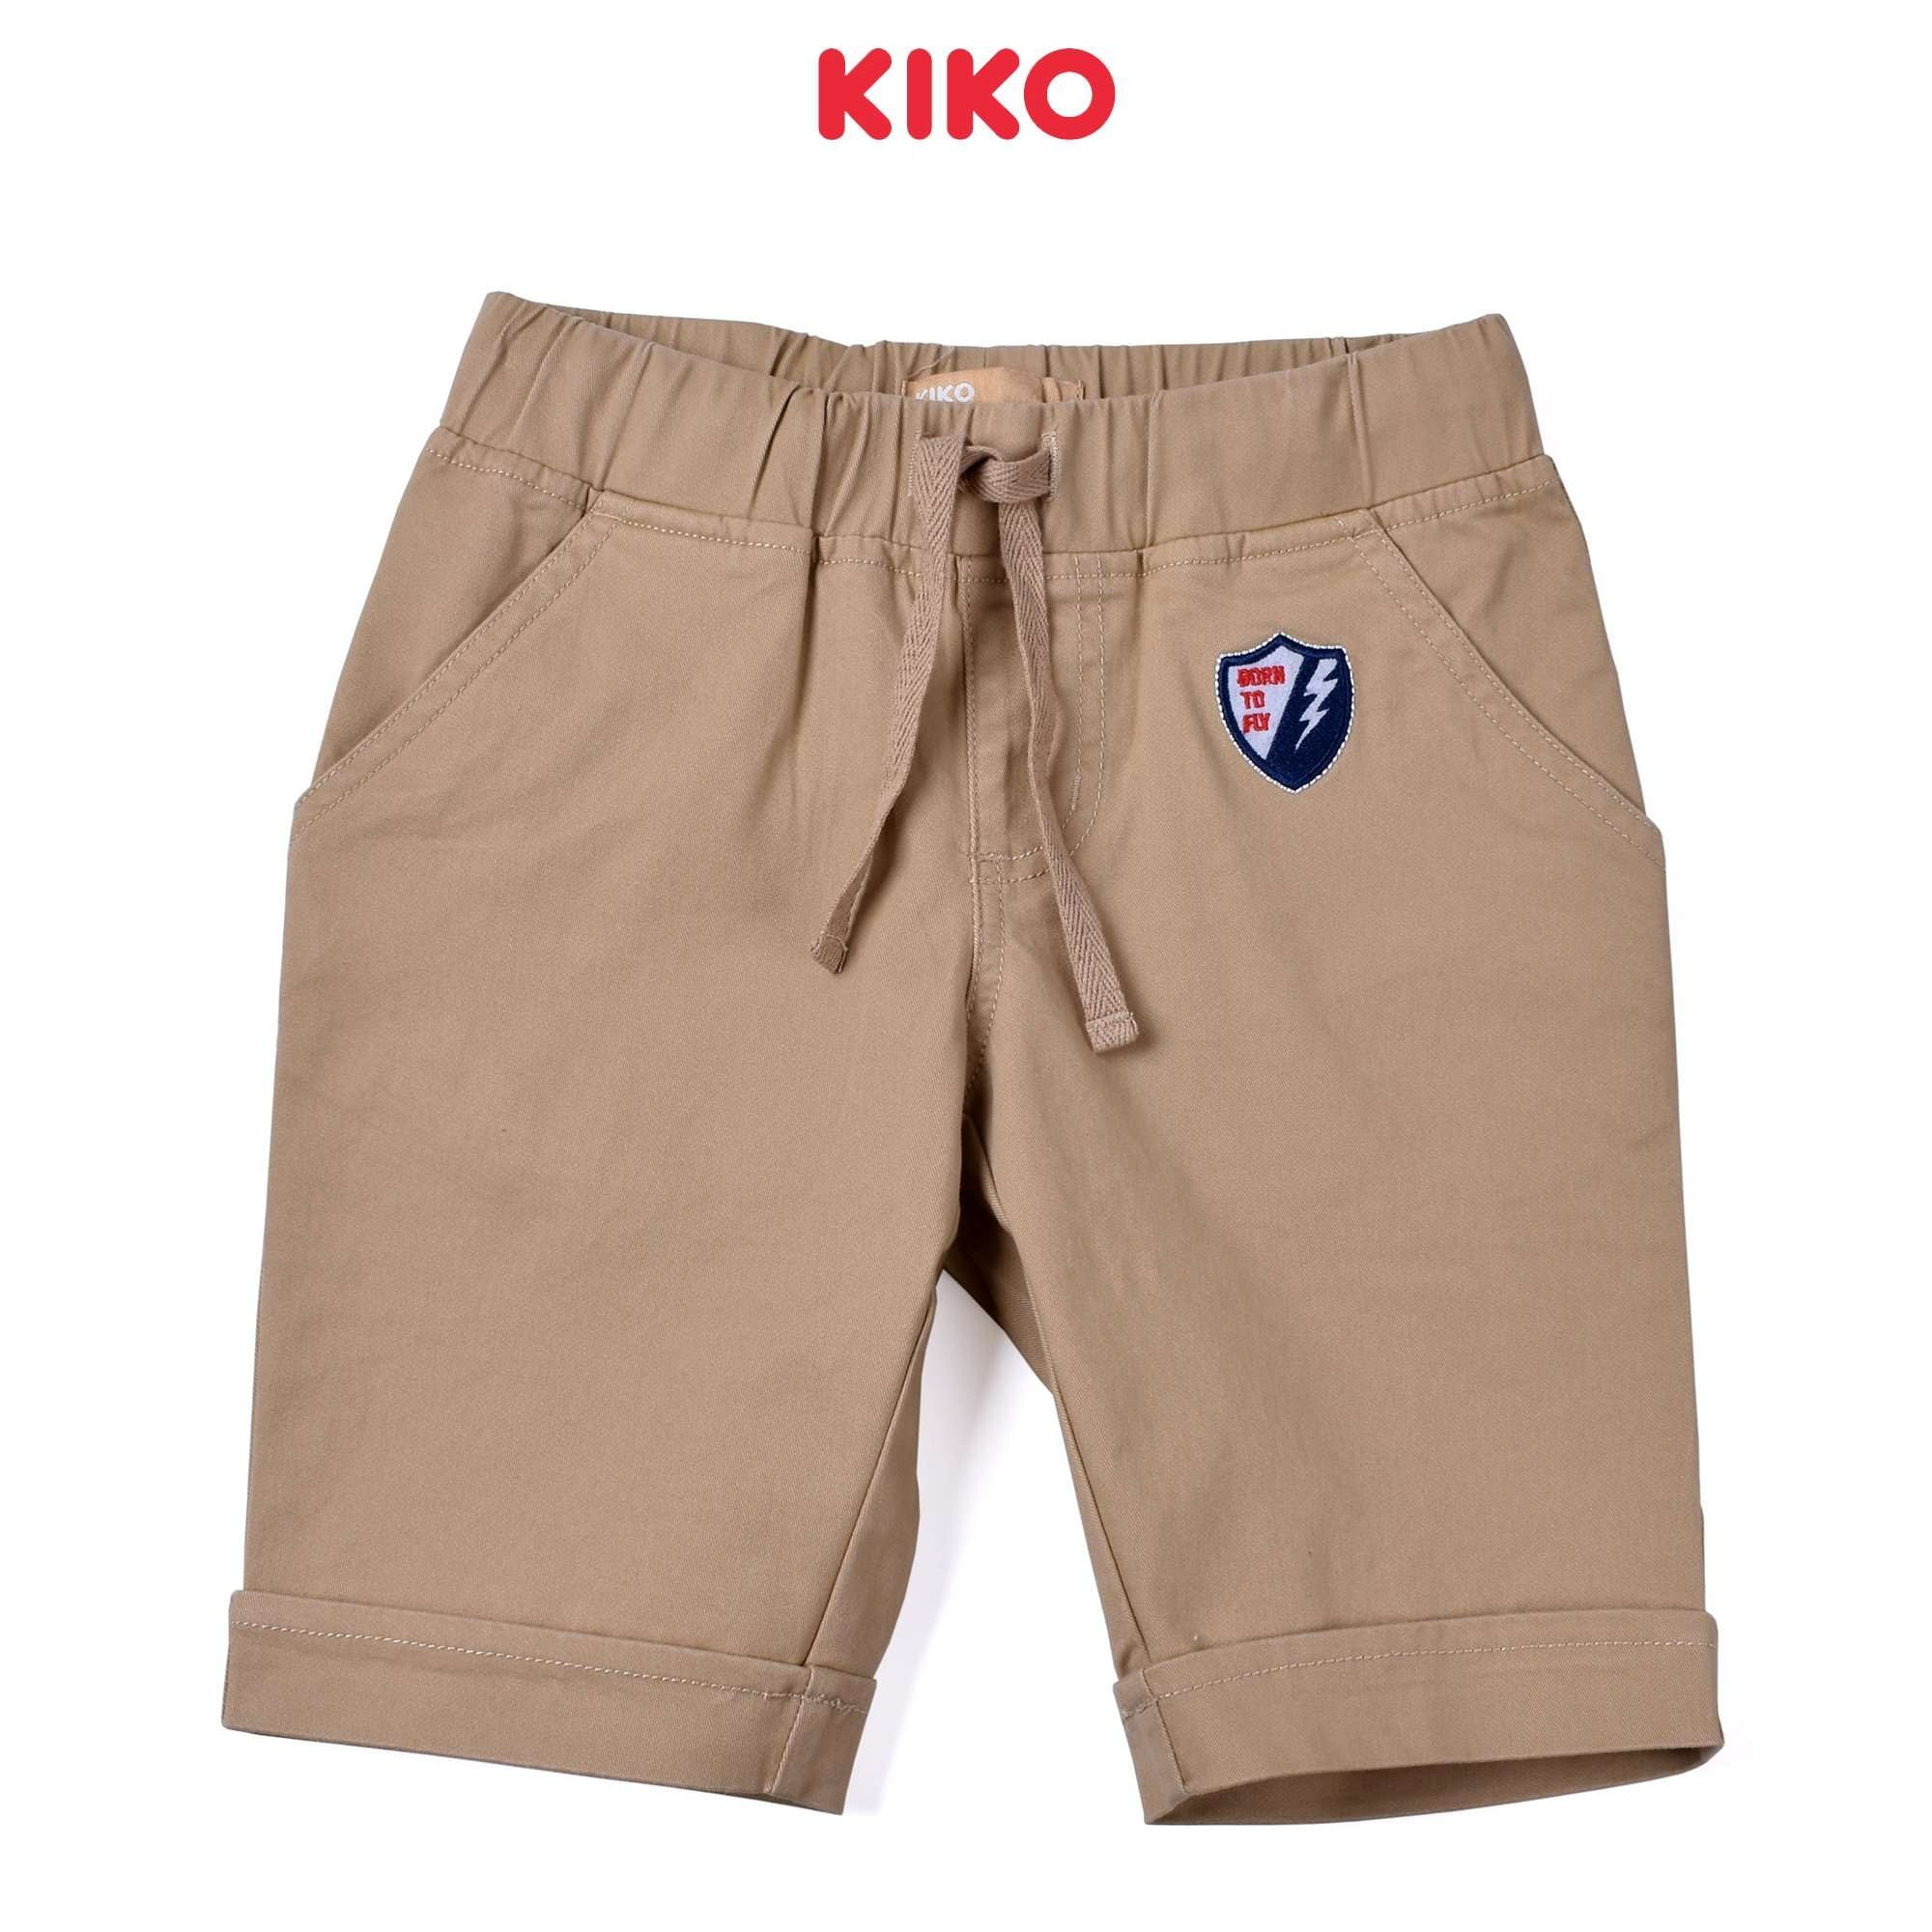 KIKO Boy Cotton Short Pants- Khaki 130115-243 : Buy KIKO online at CMG.MY